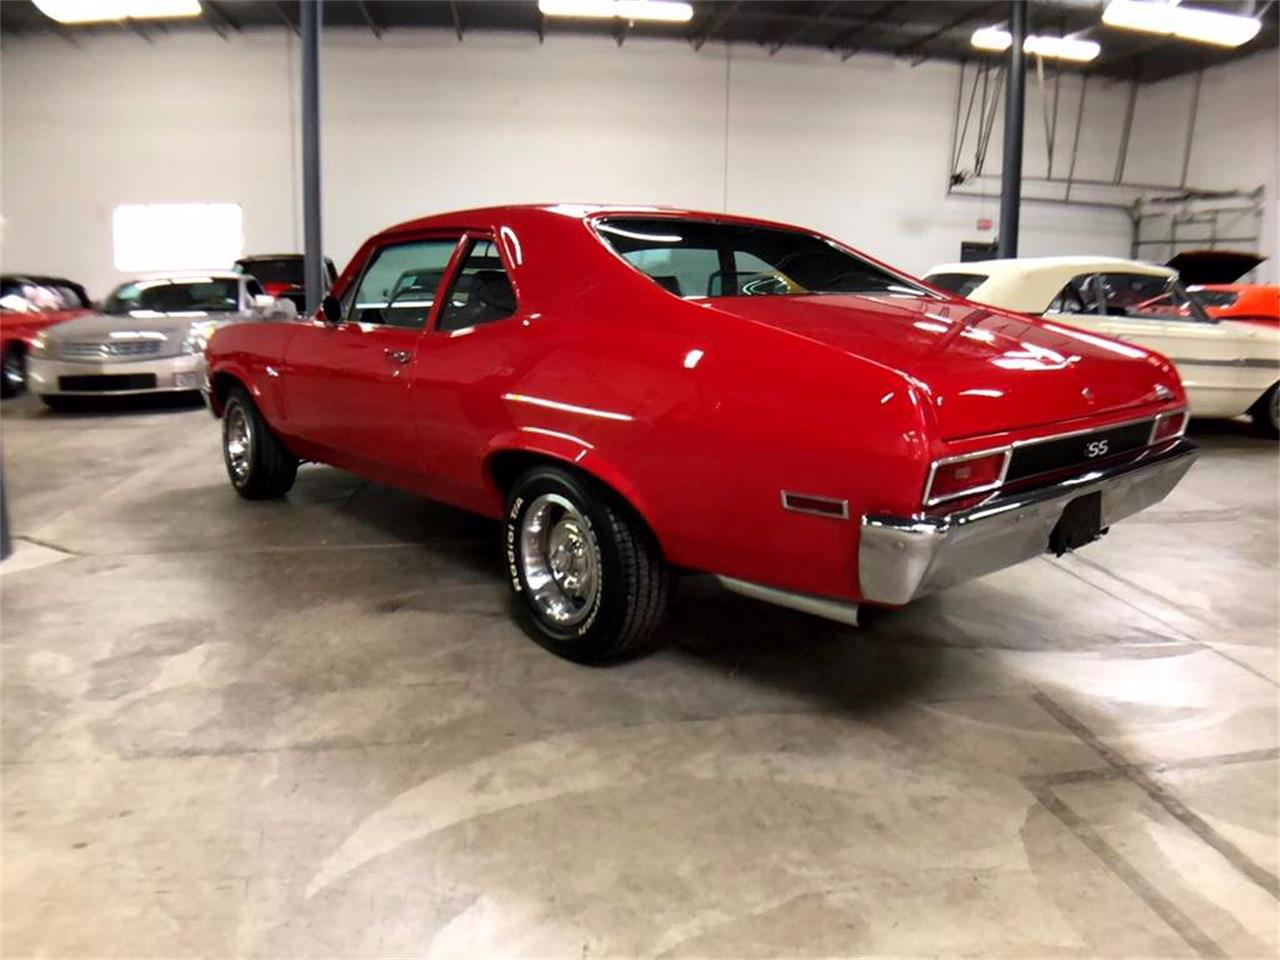 Large Picture of Classic '70 Chevrolet Nova located in Gurnee Illinois - $29,995.00 Offered by Black Hawk Motors - Q1DC